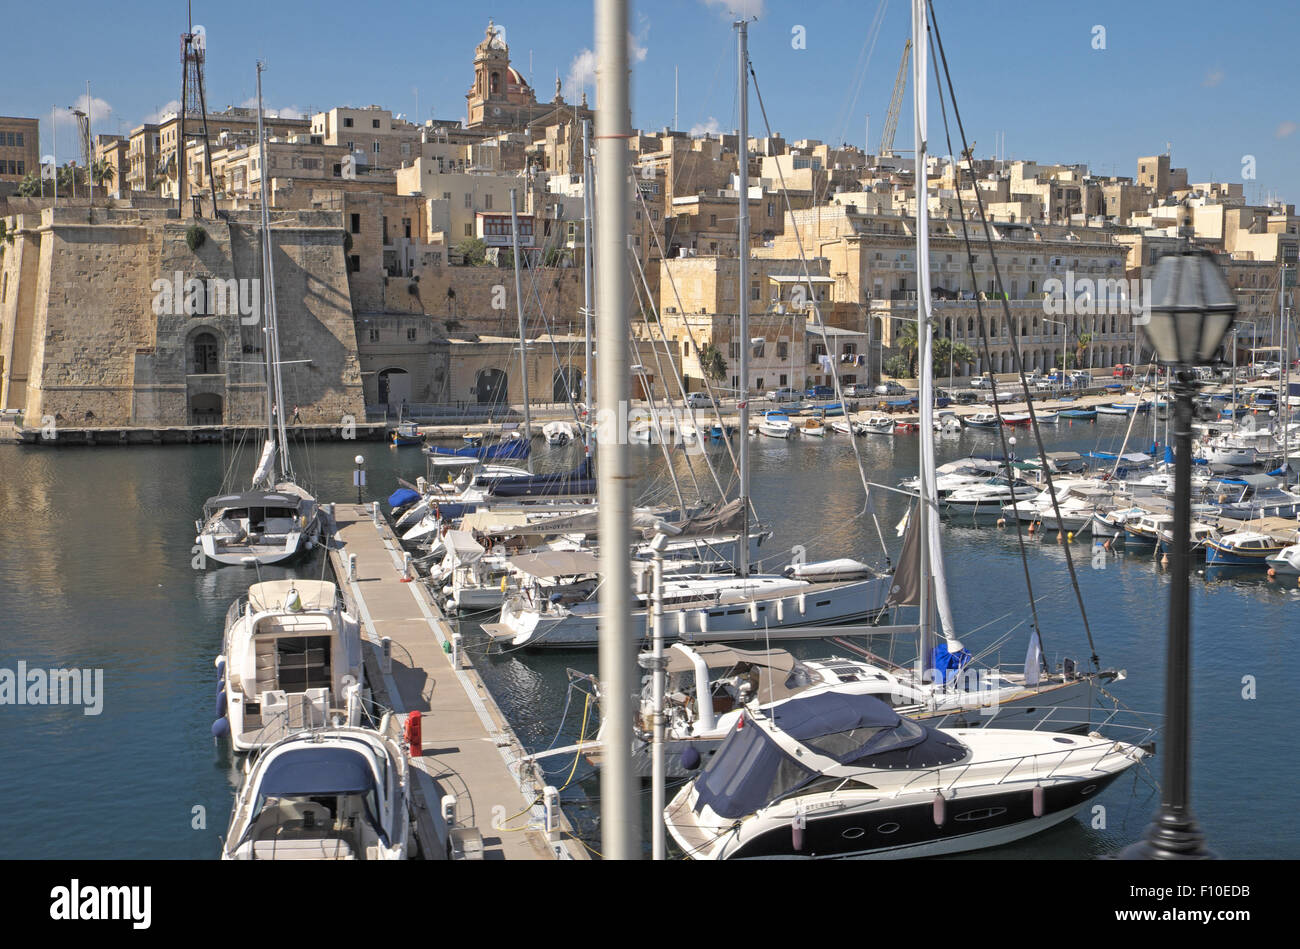 Yachts with old stone buildings and fortifications beyond, near Valletta, Malta. - Stock Image